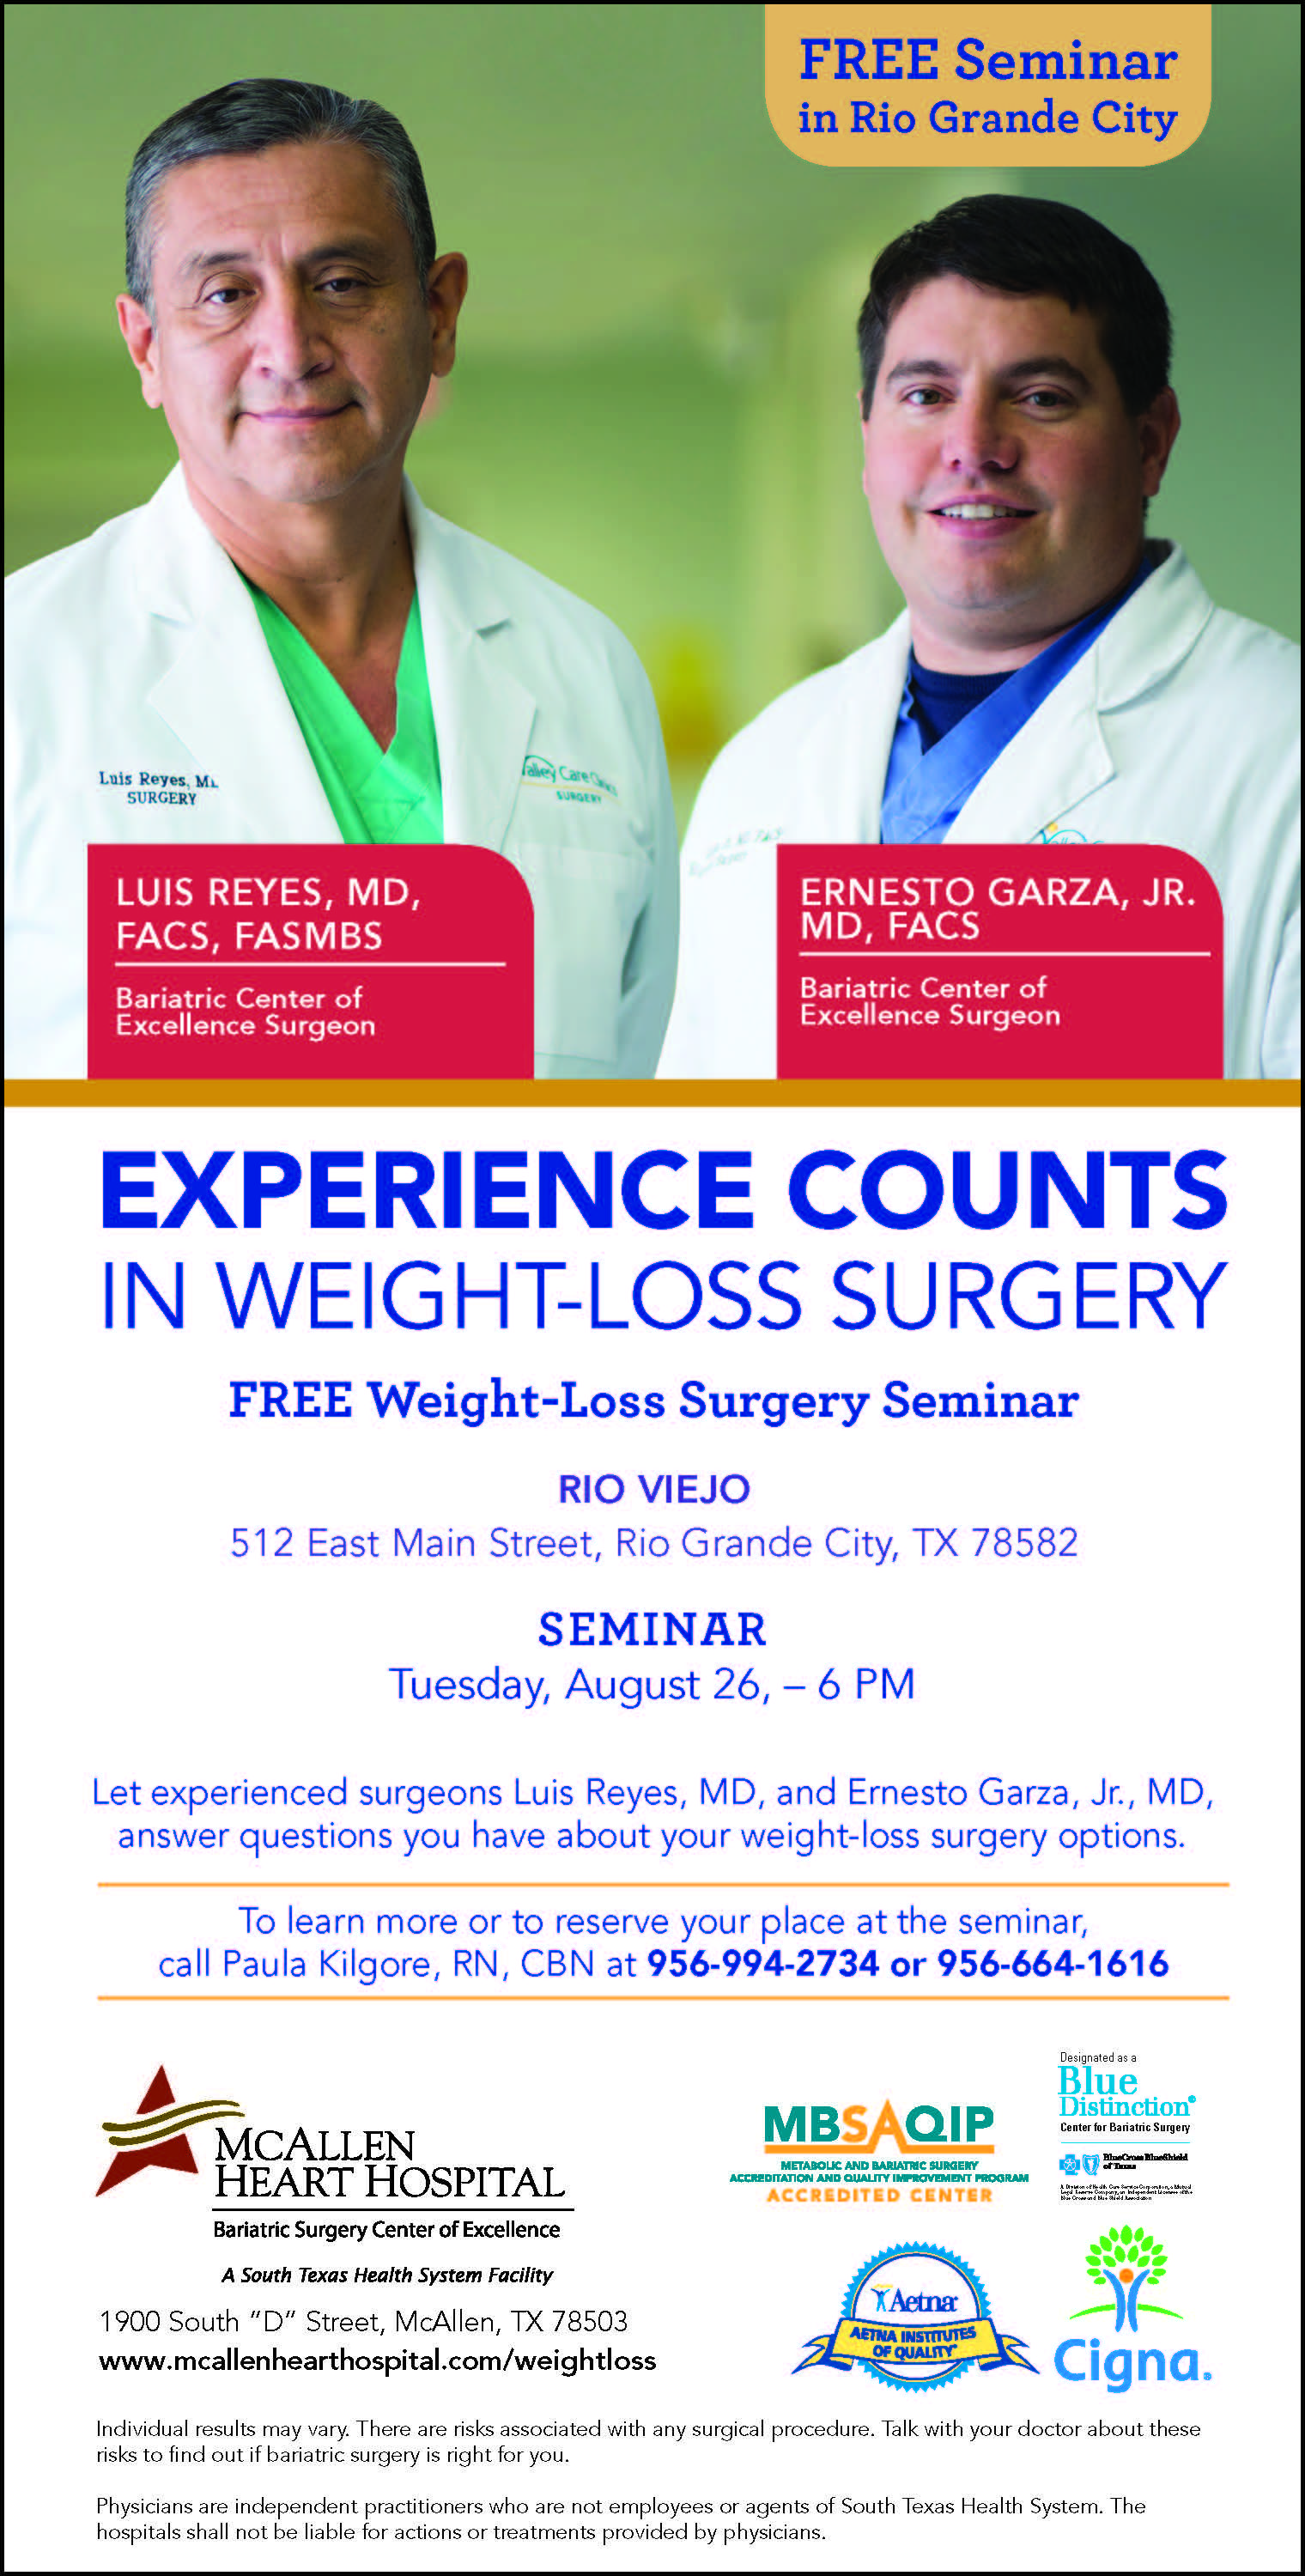 Aug 26 Free Weight Loss Surgery Seminar In Rio Grande City Texas